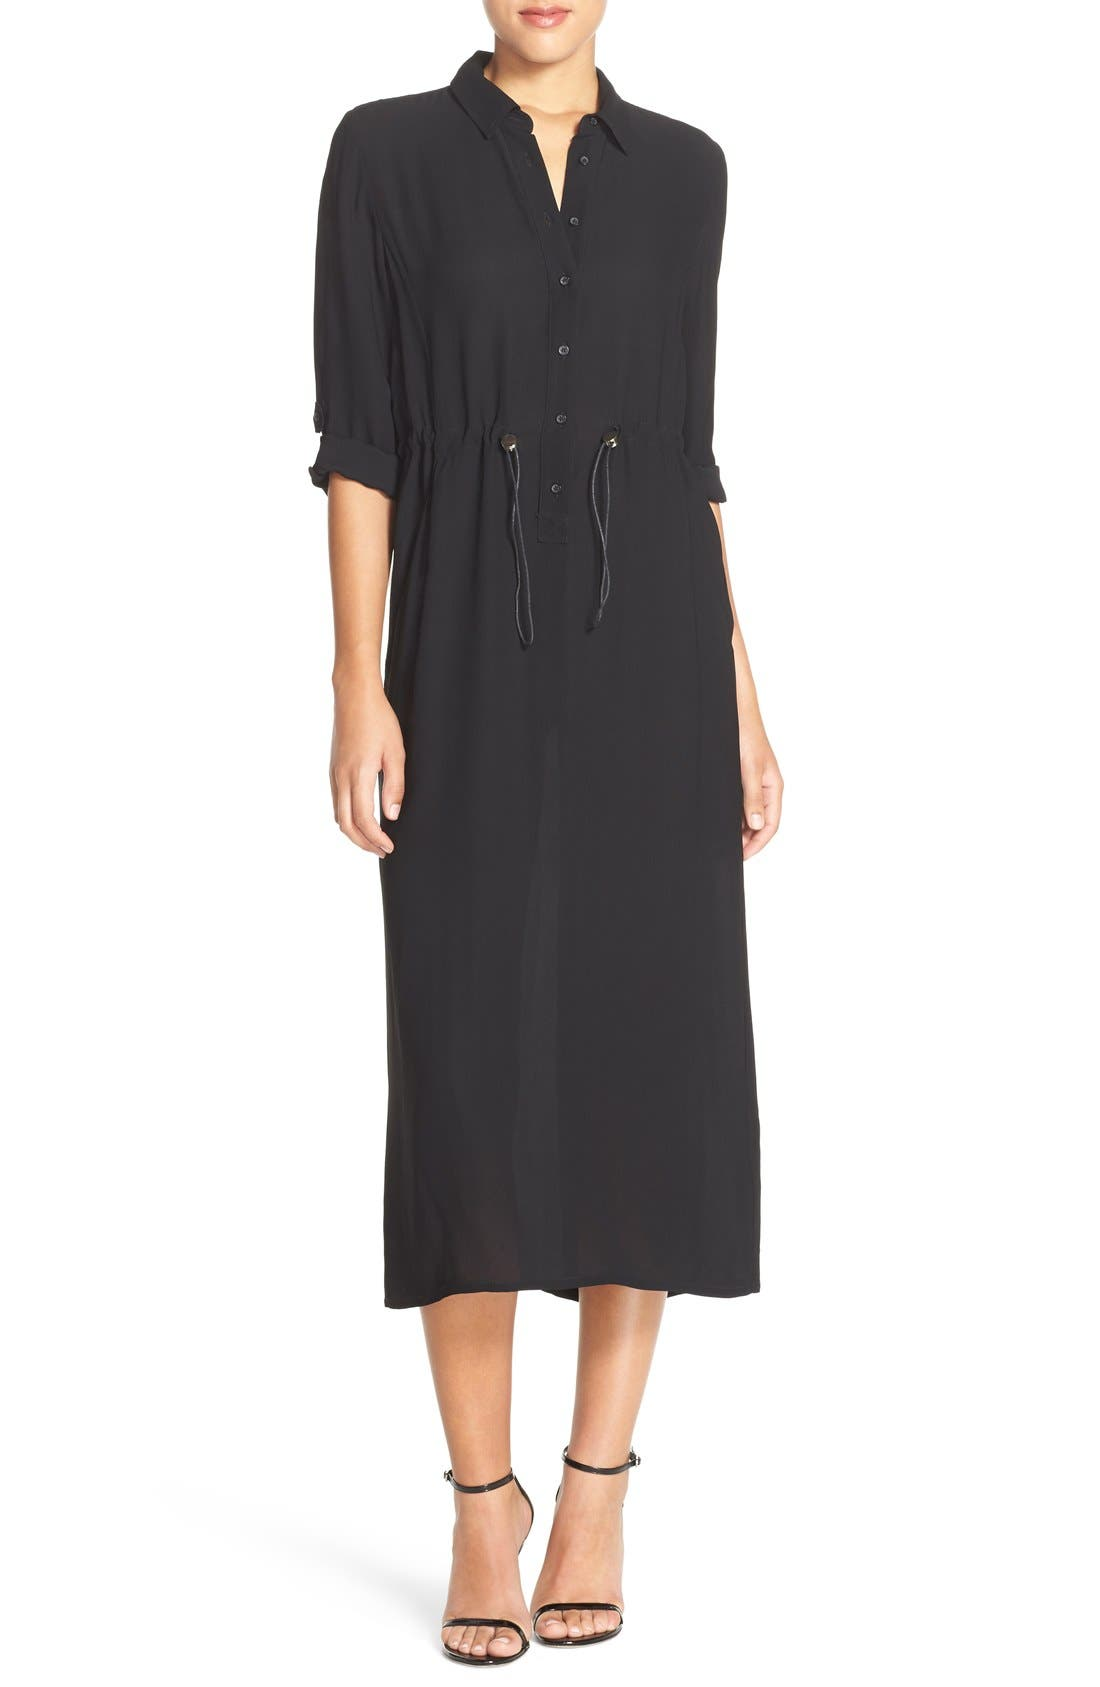 FRENCH CONNECTION, 'Cecil' Midi Shirtdress, Main thumbnail 1, color, 005